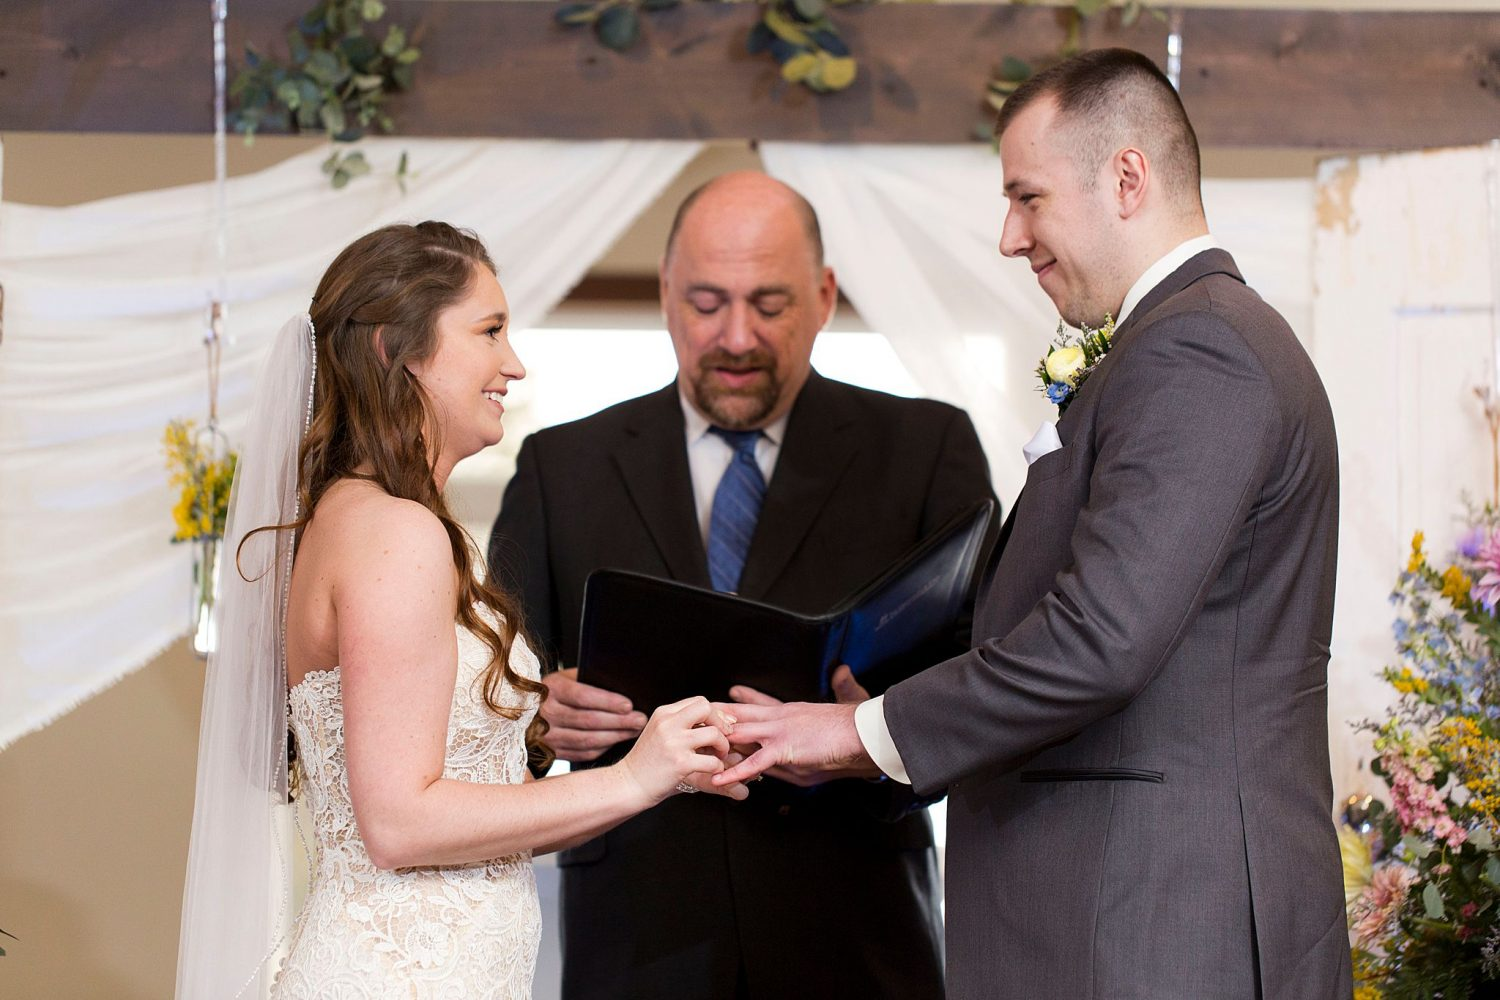 Bride putting ring on groom's finger as they smile.